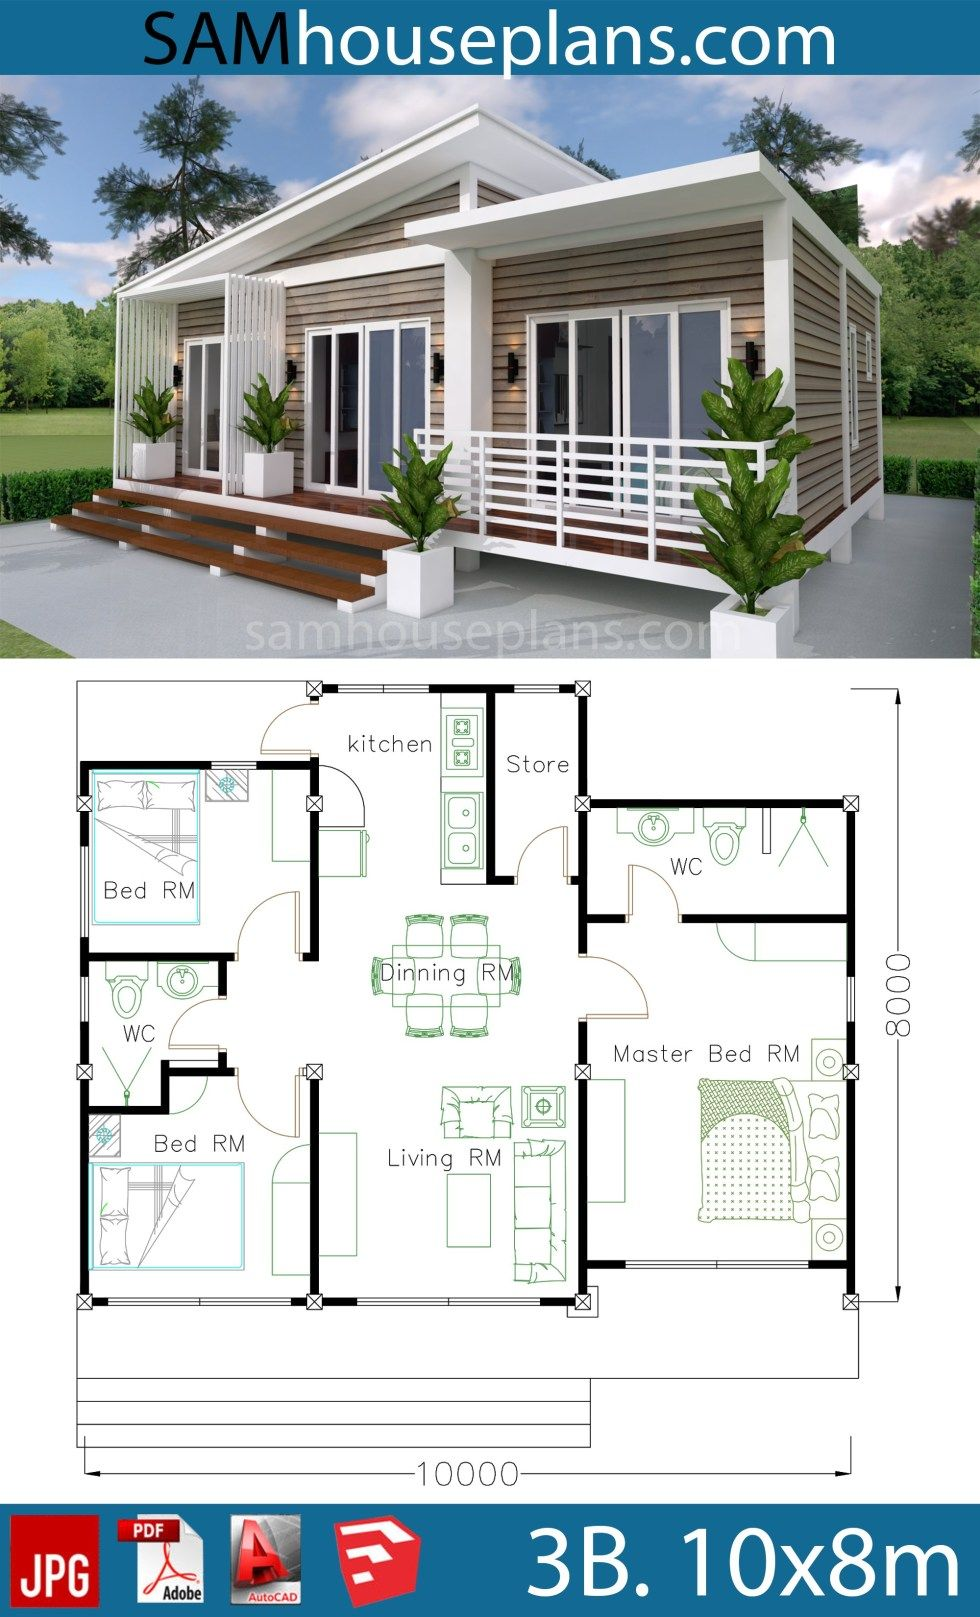 House Plans 10x8m With 3 Bedrooms Sam House Plans Affordable House Plans Beach House Floor Plans Beach House Flooring